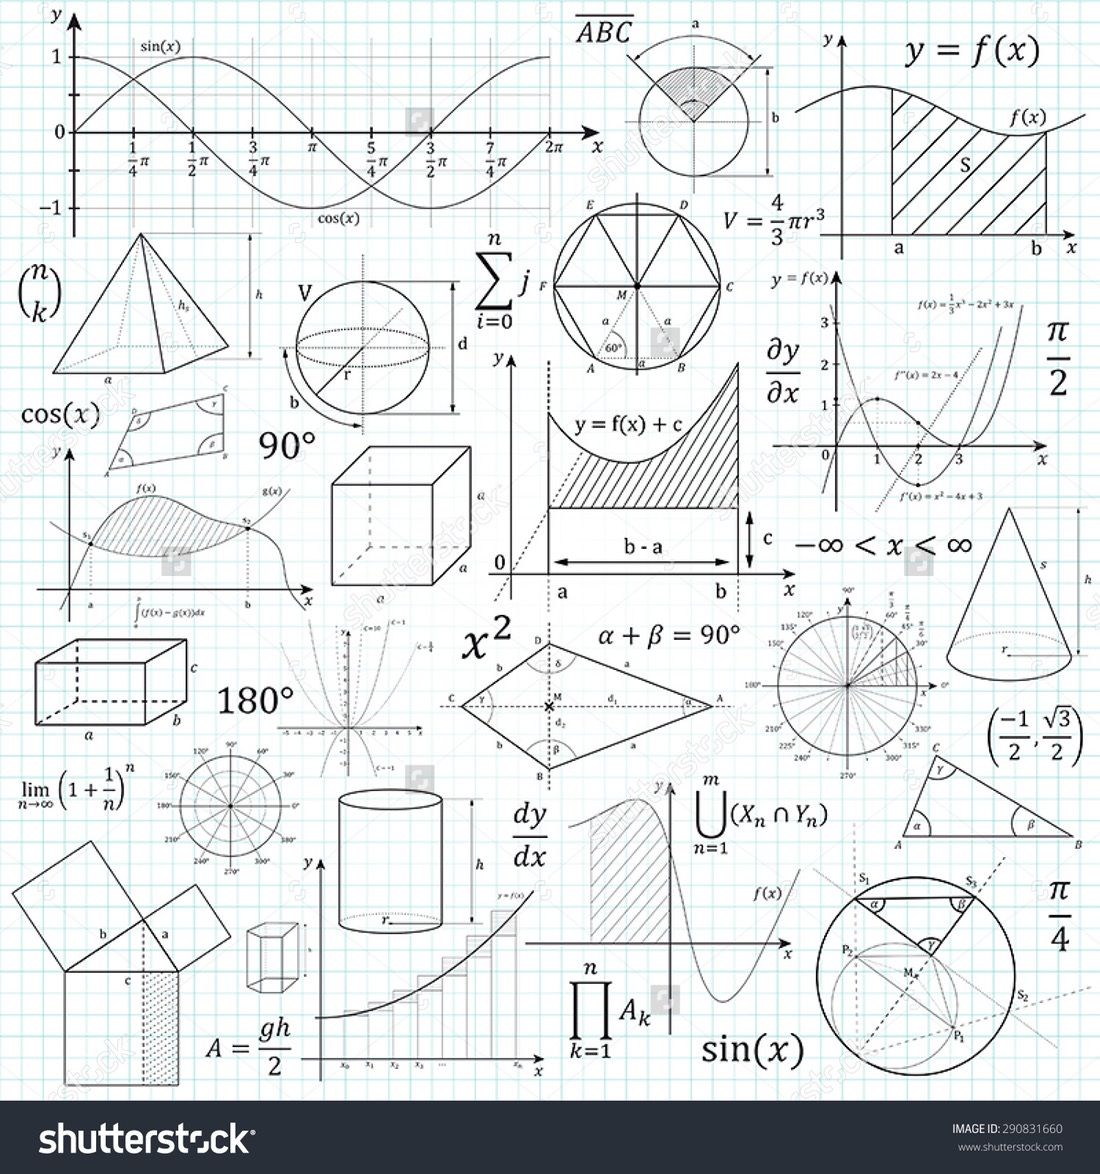 Electrical Symbols Drawing At Getdrawings